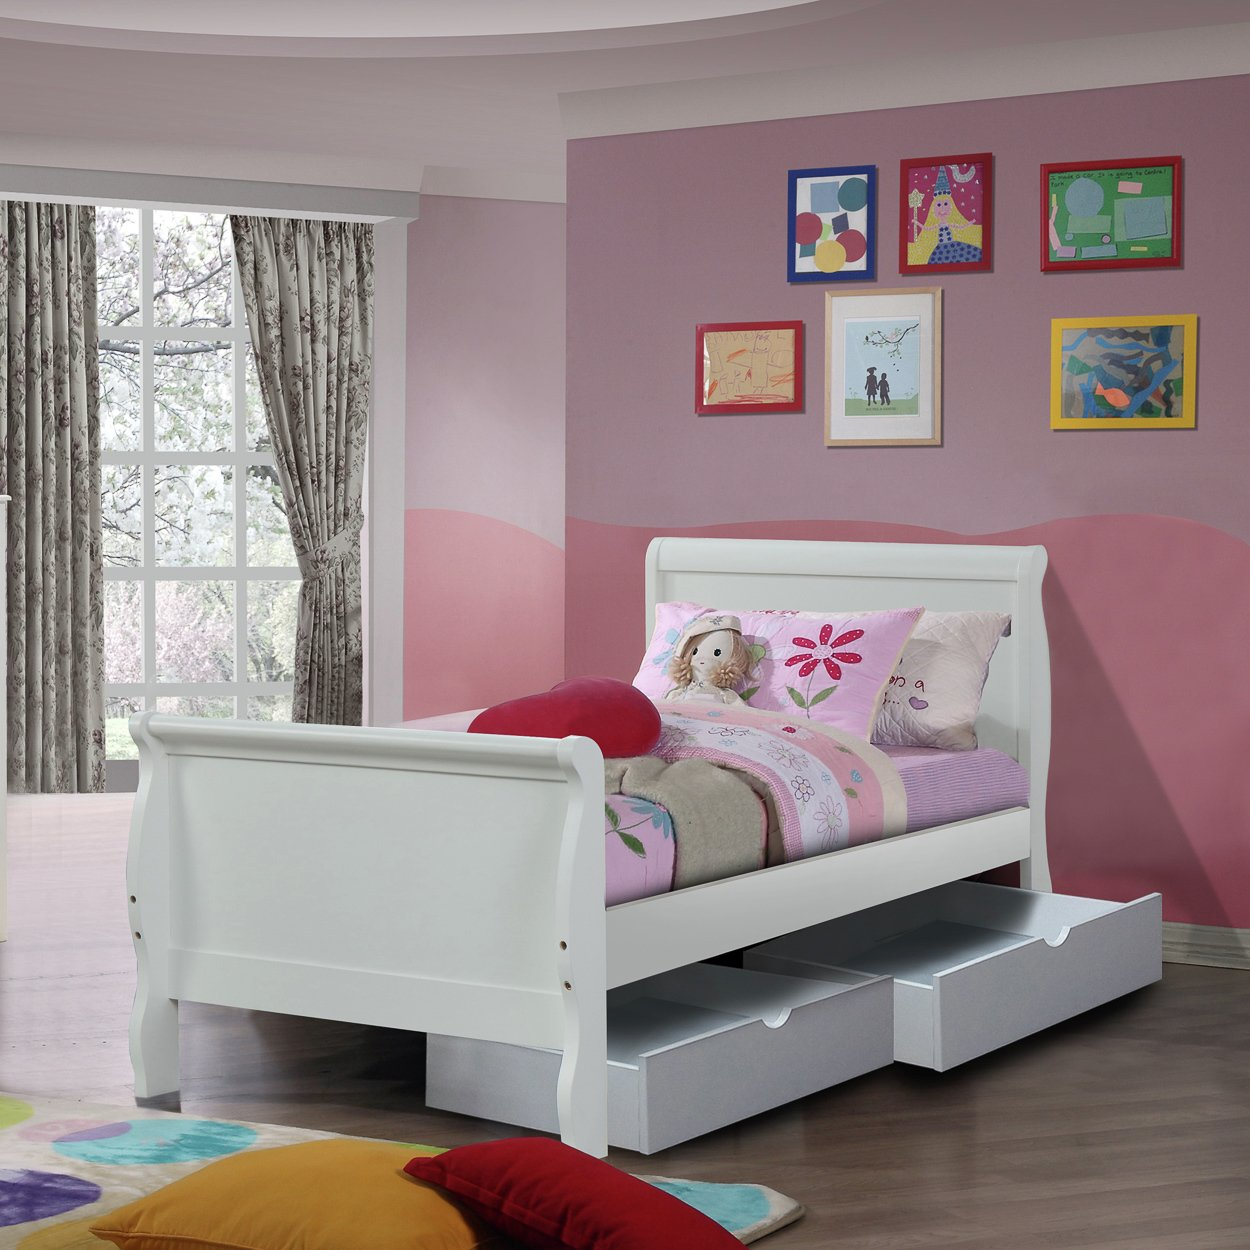 Nevis Single White Bed Frame with 2 Drawers